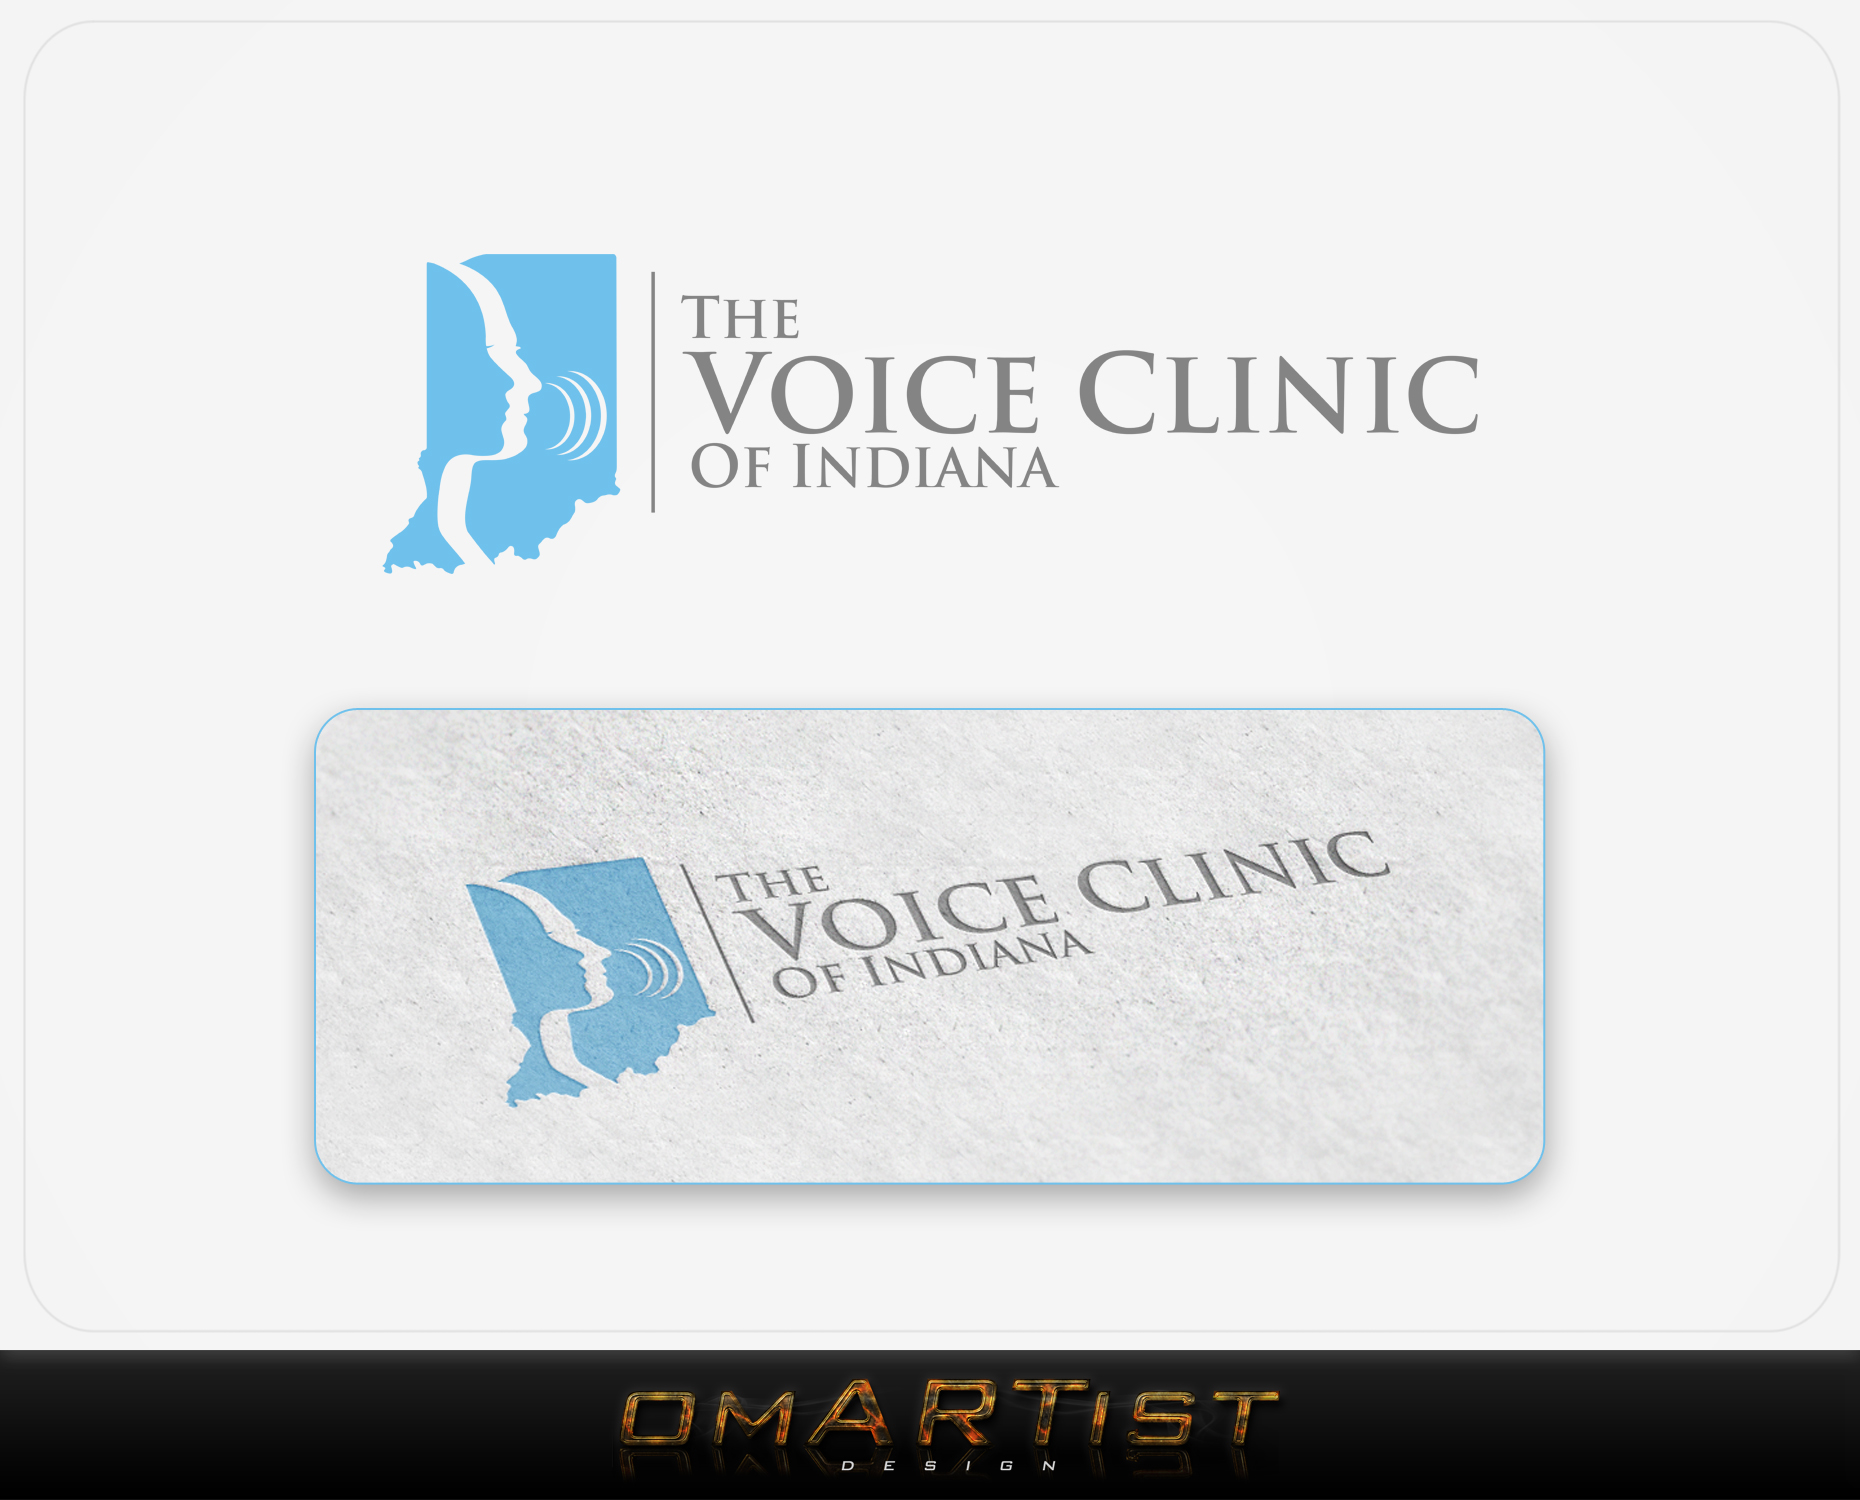 Logo Design by omARTist - Entry No. 18 in the Logo Design Contest Logo Design for The Voice Clinic of Indiana.